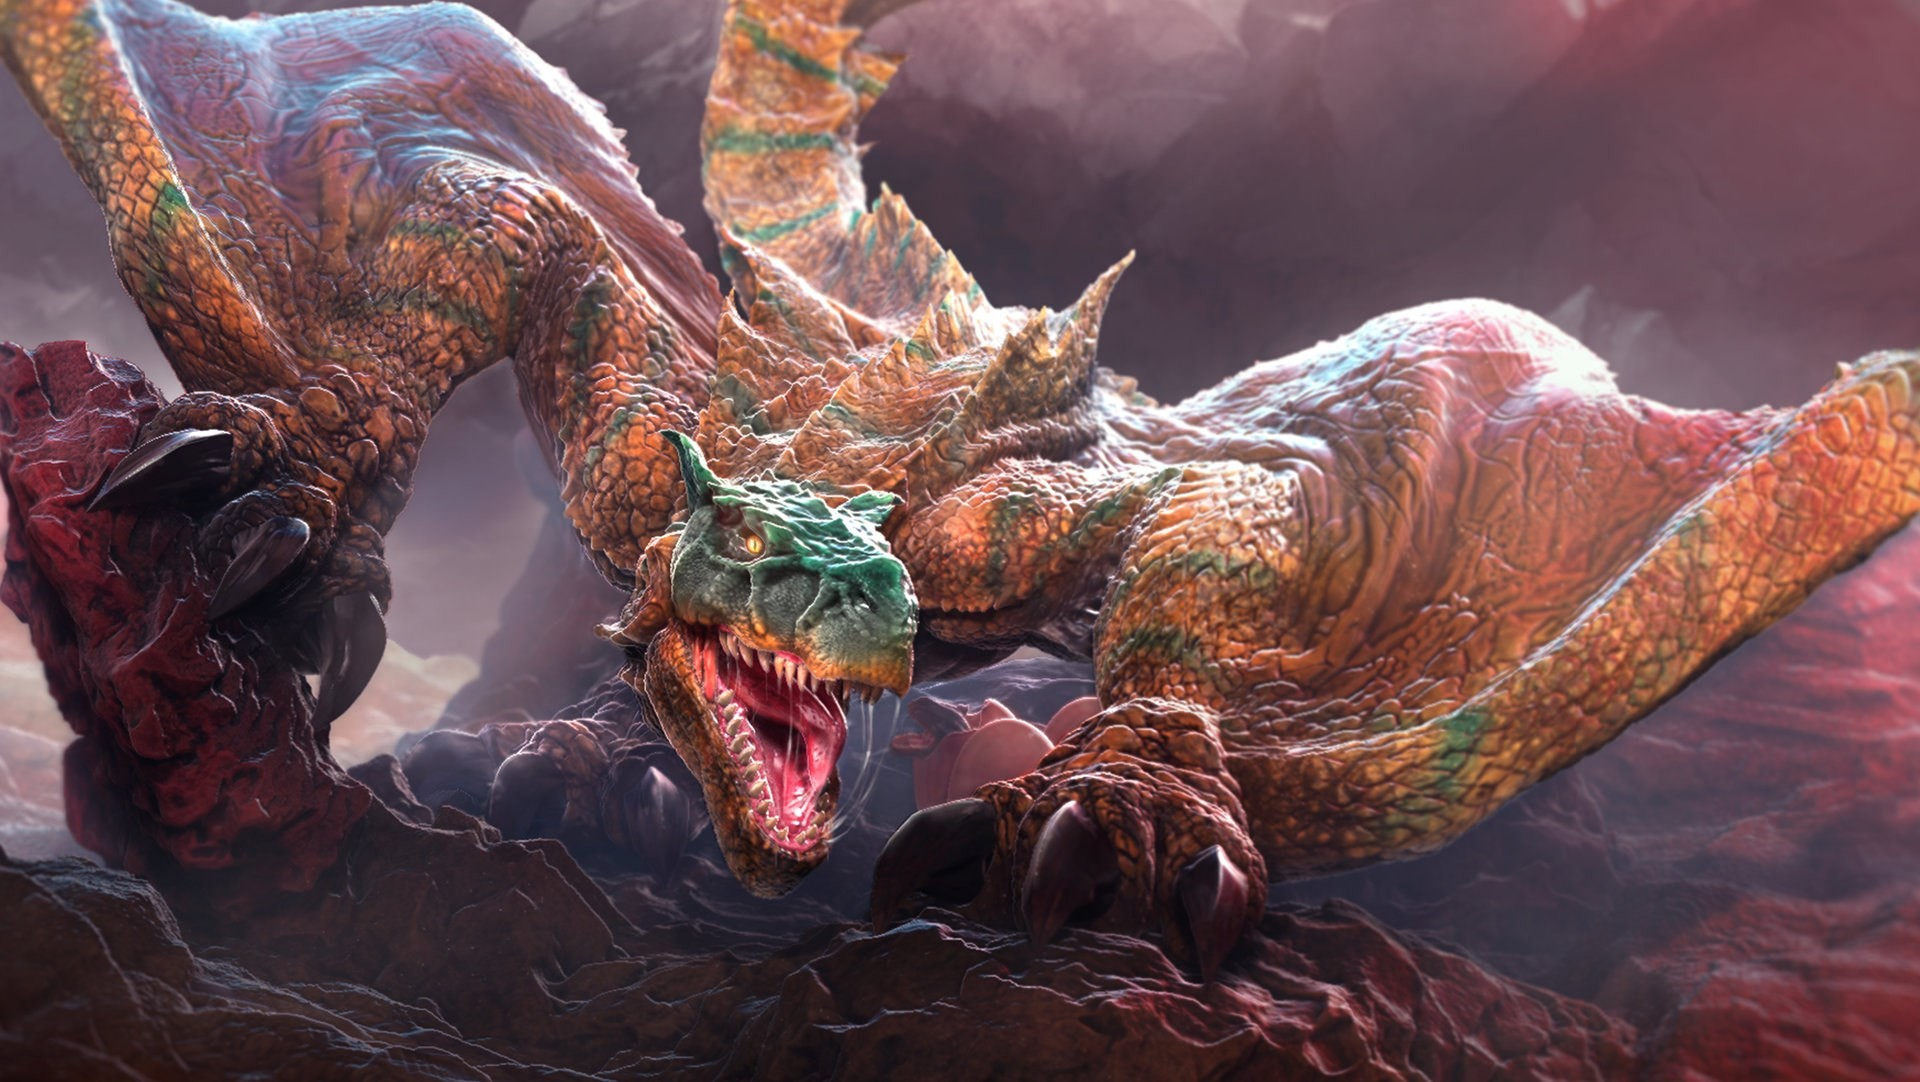 Cool Monster Backgrounds 58 Images